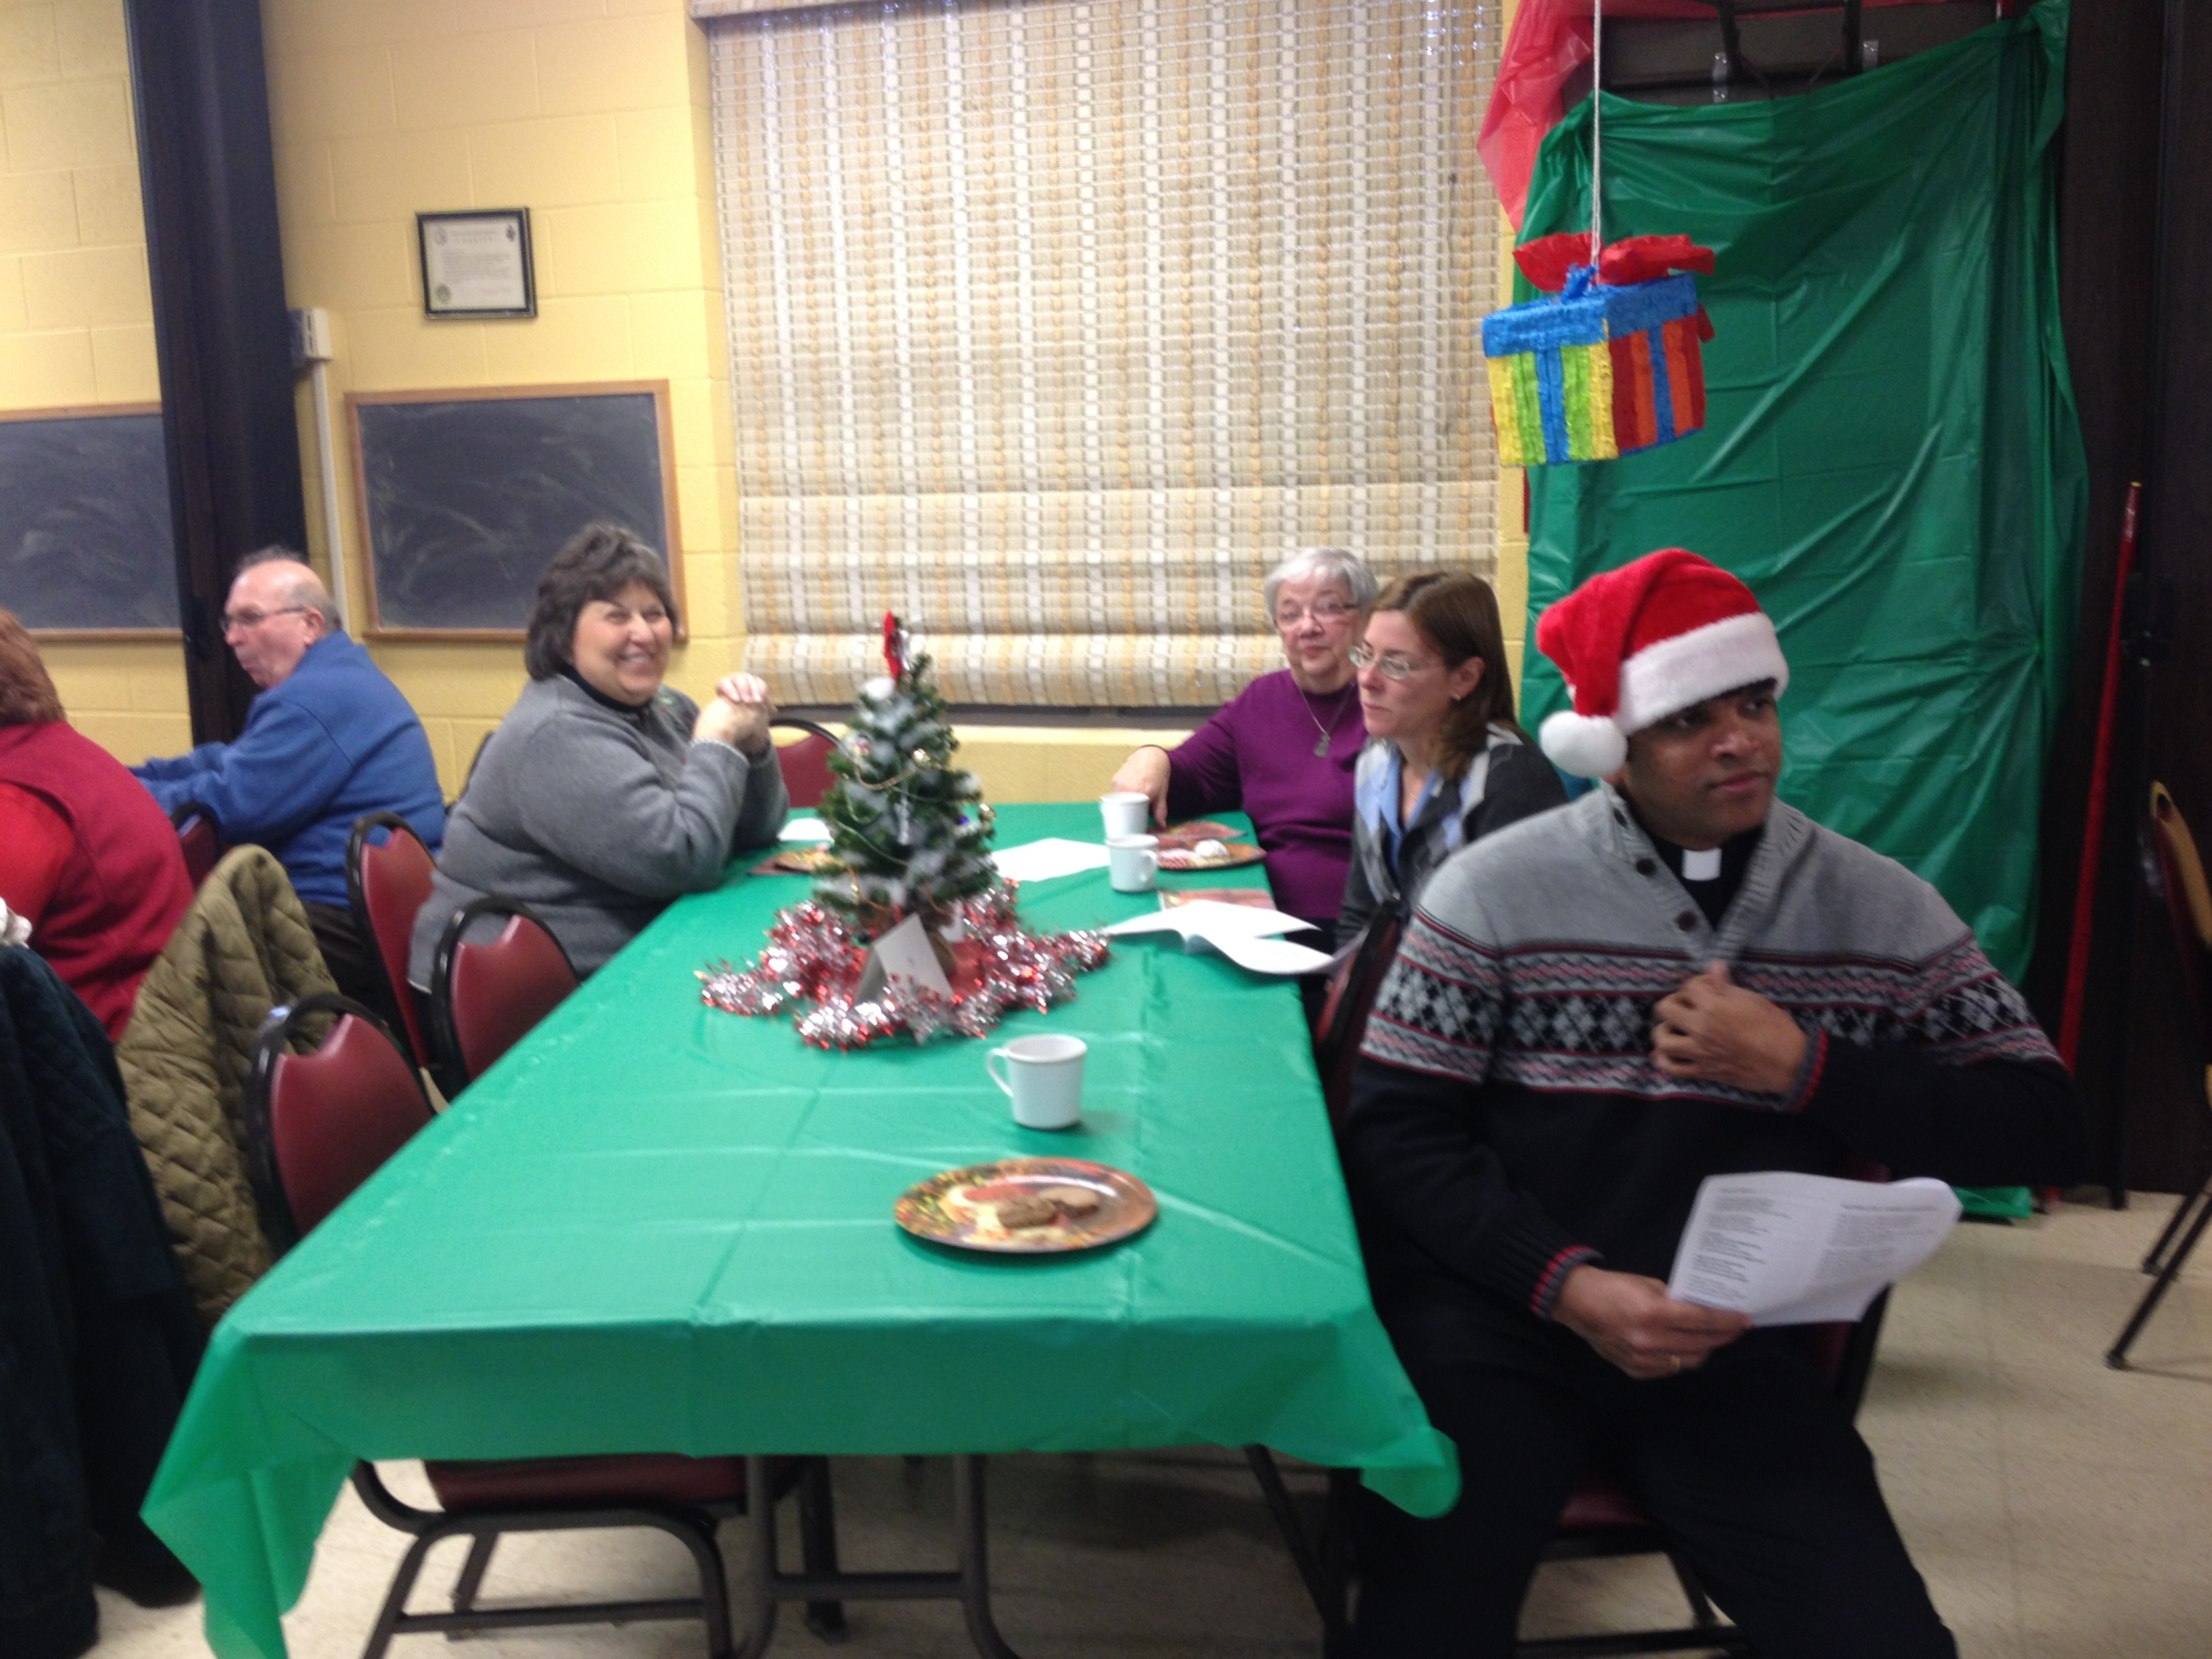 OLG Christmas Party 2014 (23).JPG